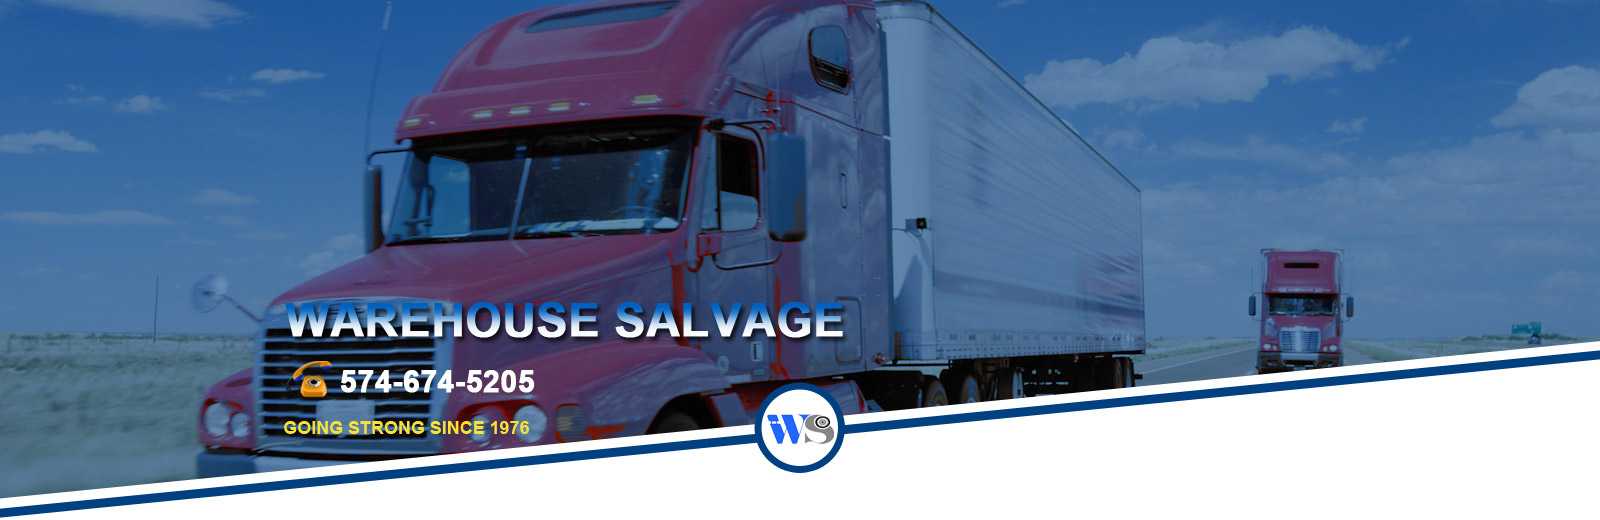 Great deals from Warehouse Salvage in CONVERSION-VAN- | eBay